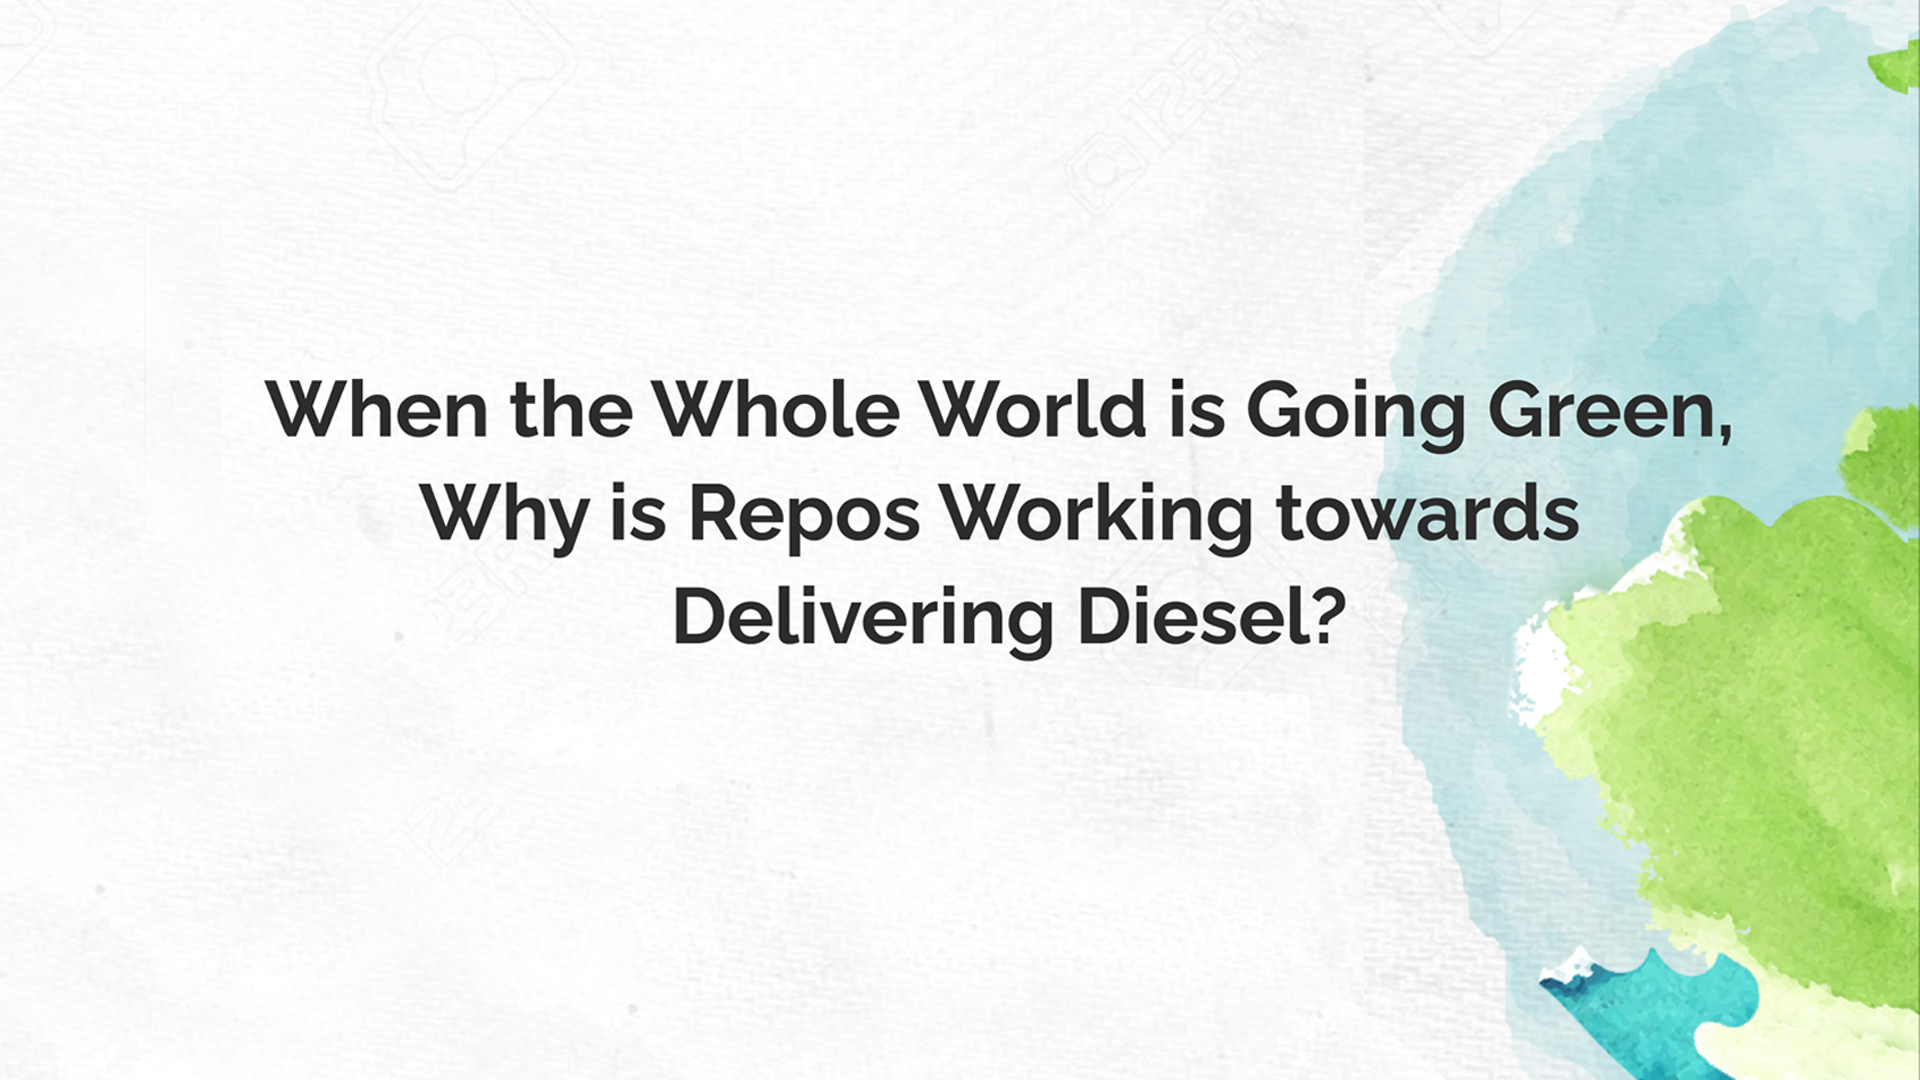 When the whole world is going green, why is Repos working towards delivering diesel?